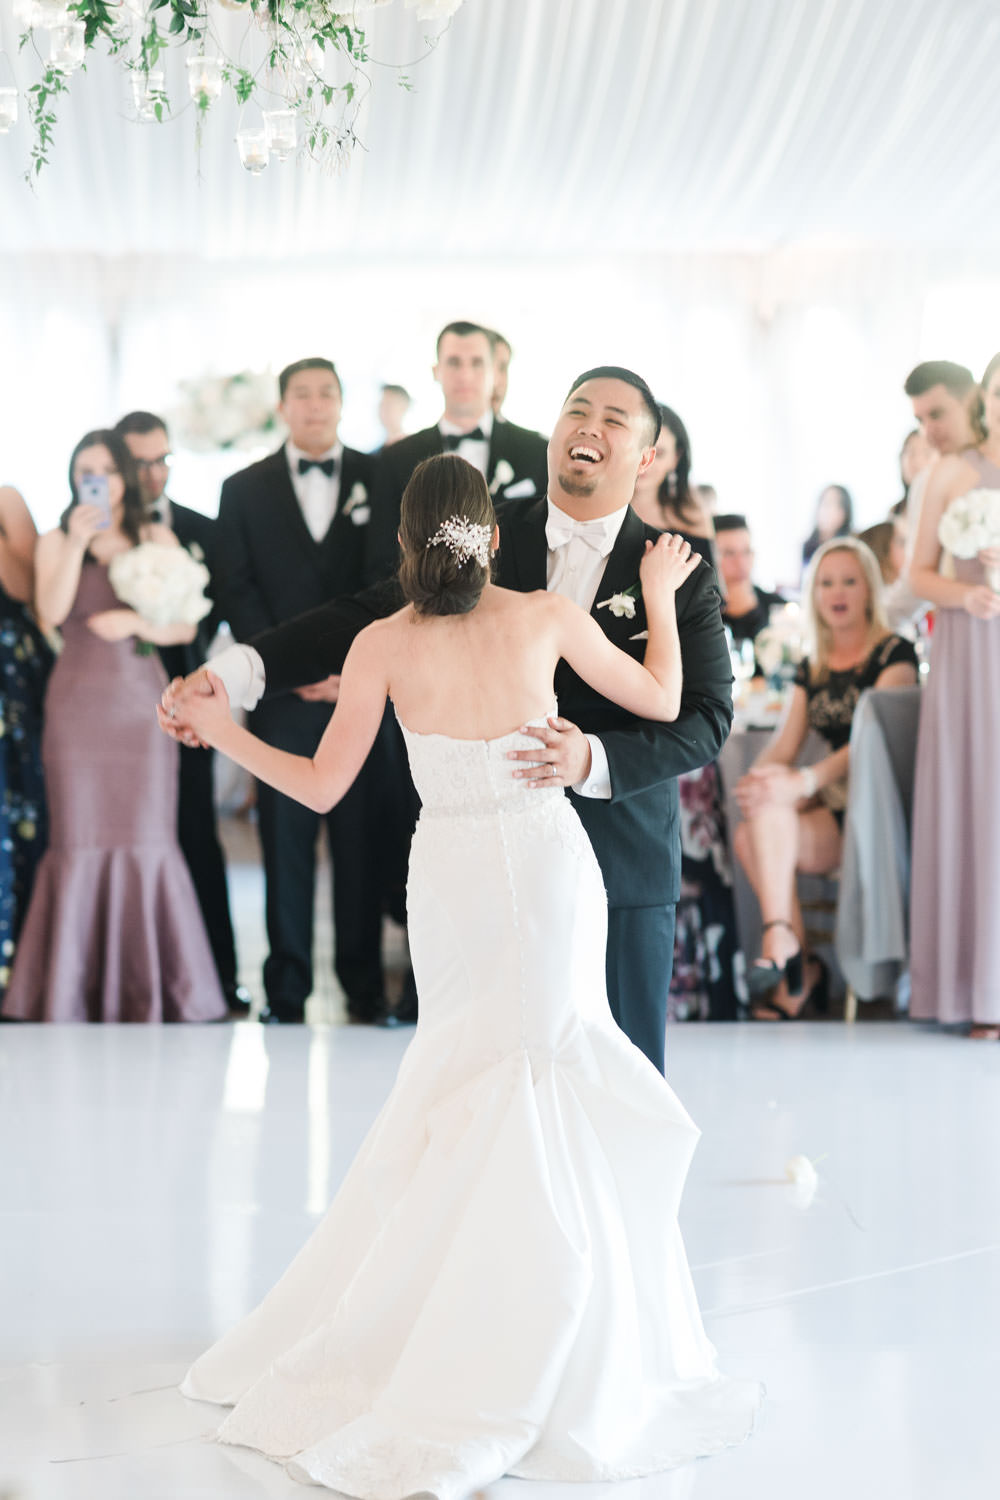 First dance with bride and groom at wedding reception tall centerpiece with white and green flowers at the Santaluz Club tented reception, Cavin Elizabeth Photography